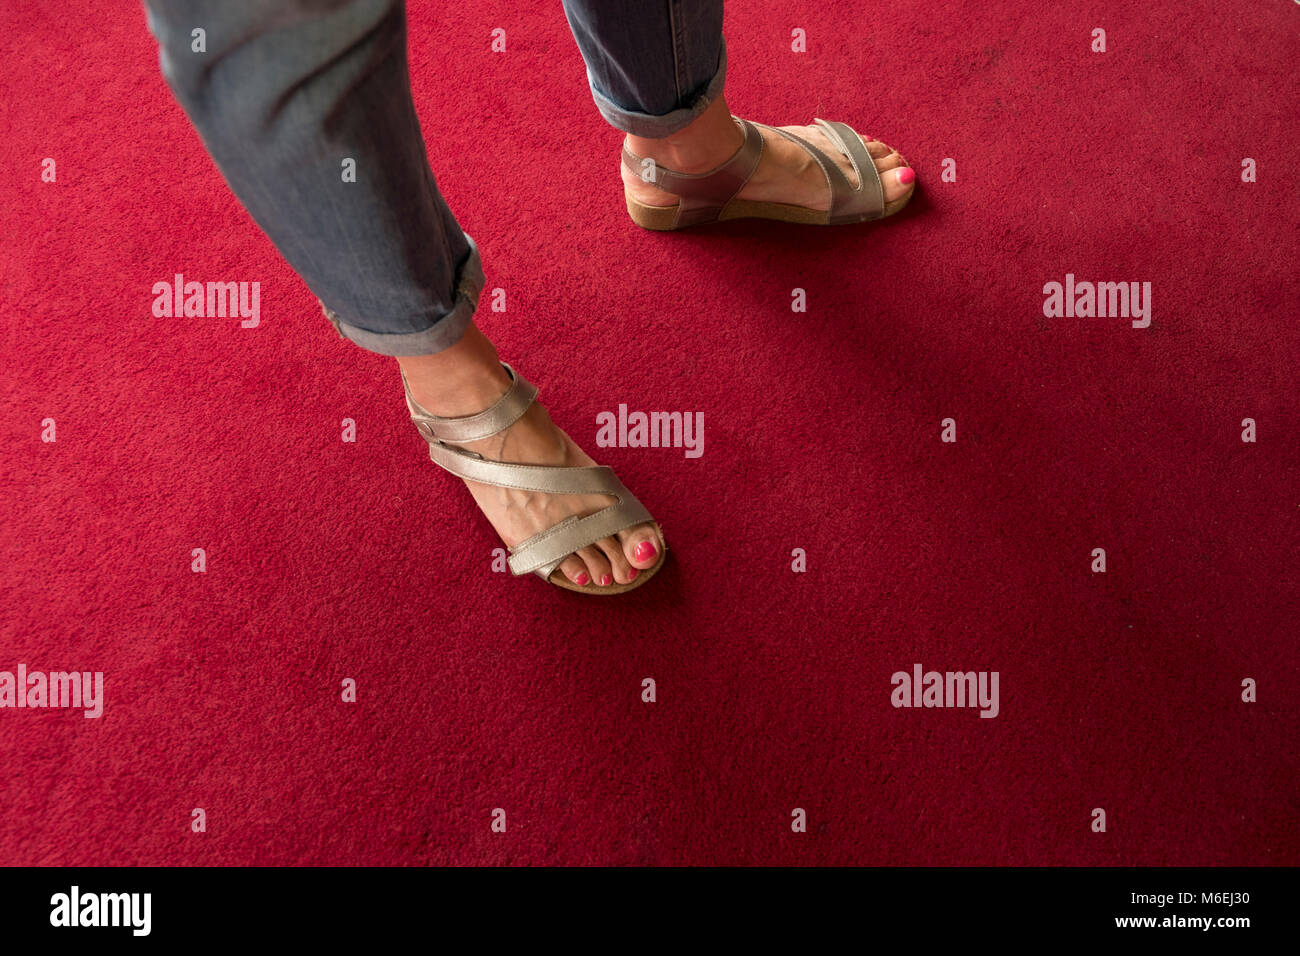 Feet with red nail varnish in silver sandles in a bright red carpet. - Stock Image